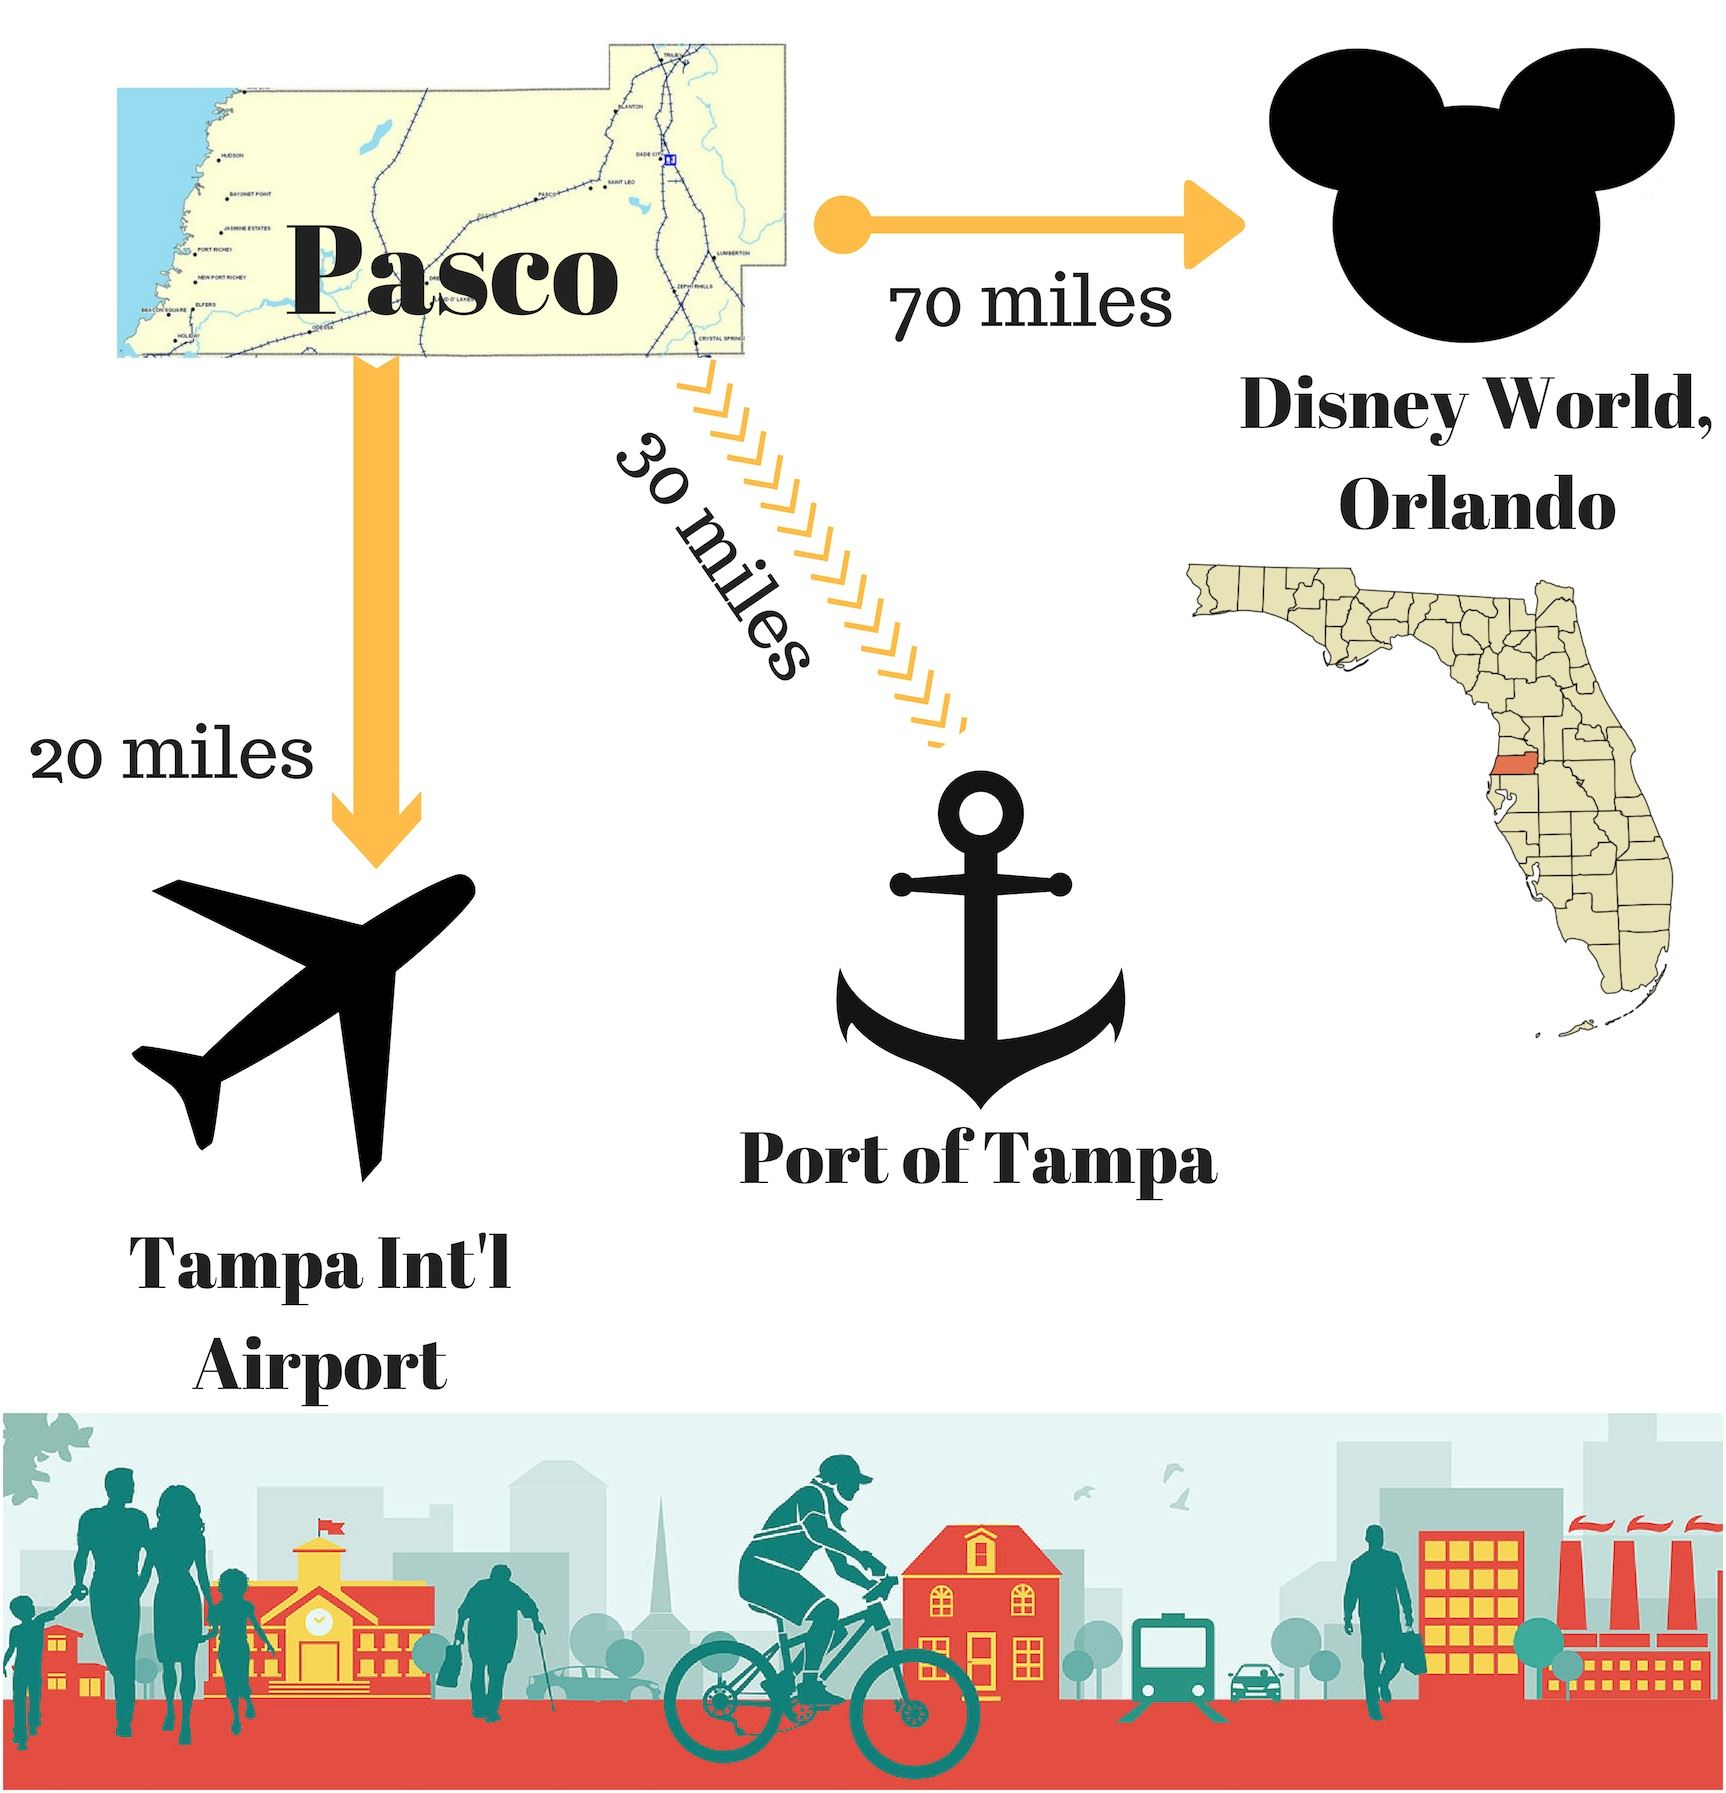 Distances to important features outside of Pasco County